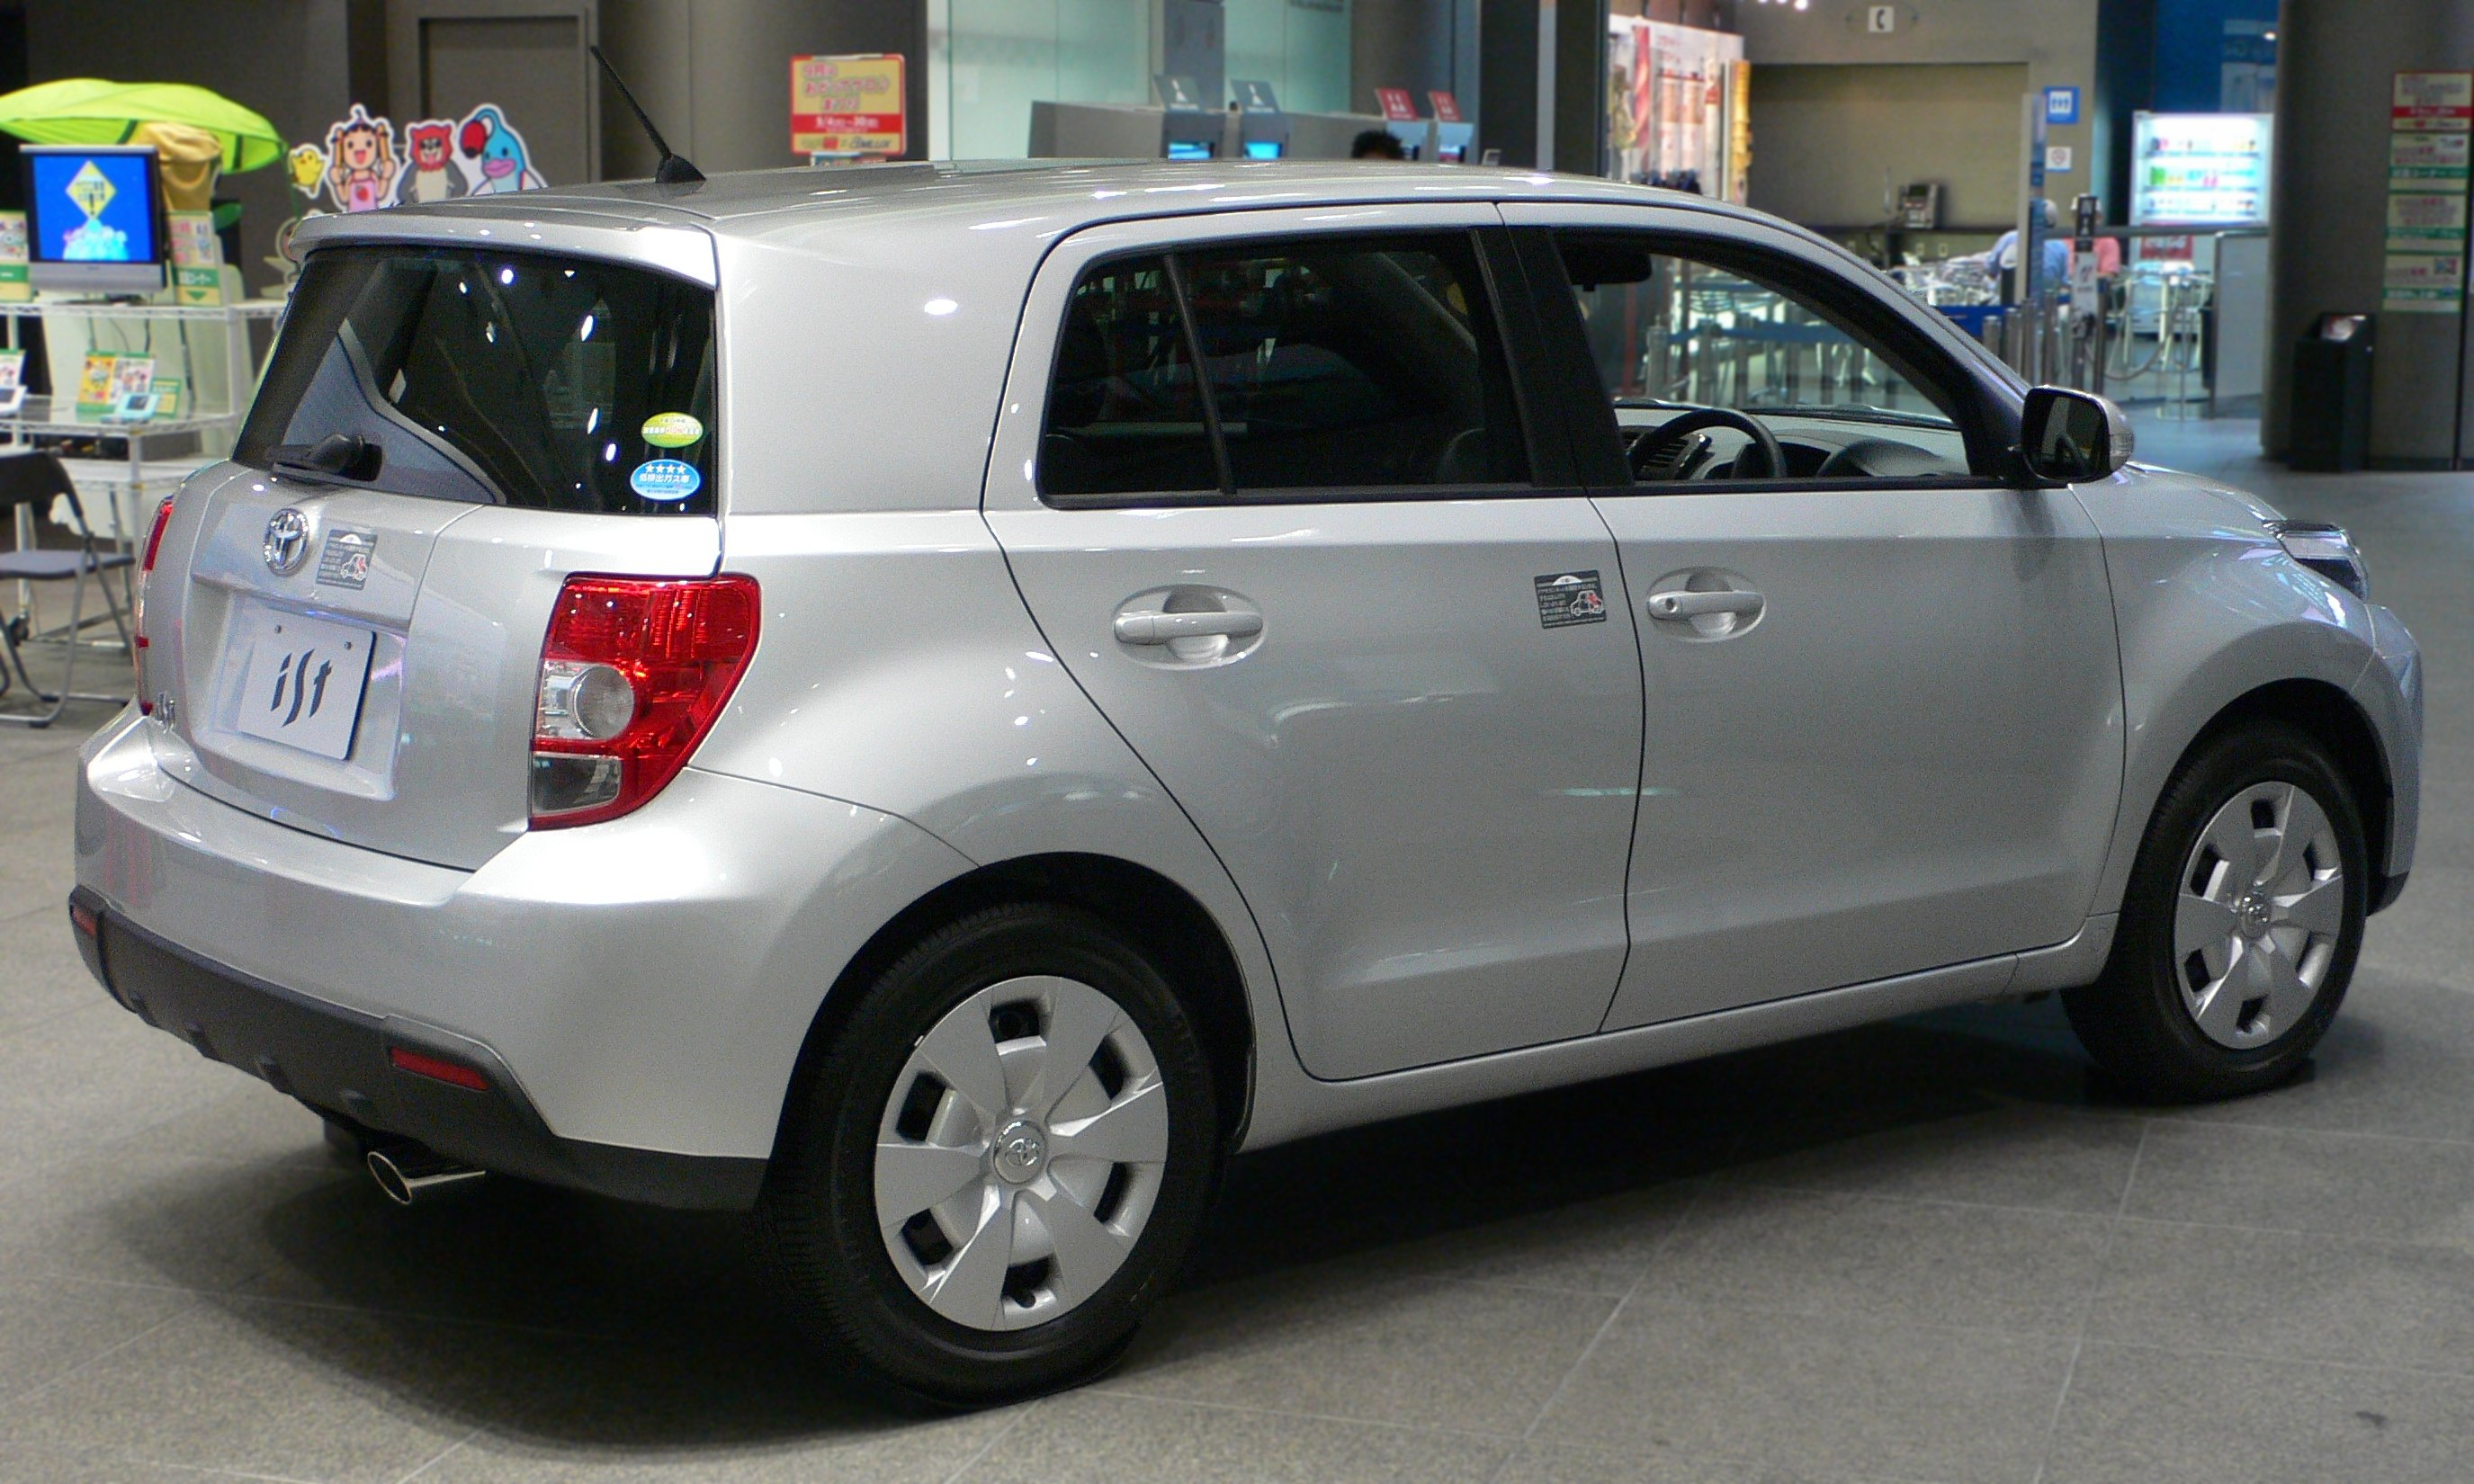 Toyota Ist 2008: Review, Amazing Pictures and Images